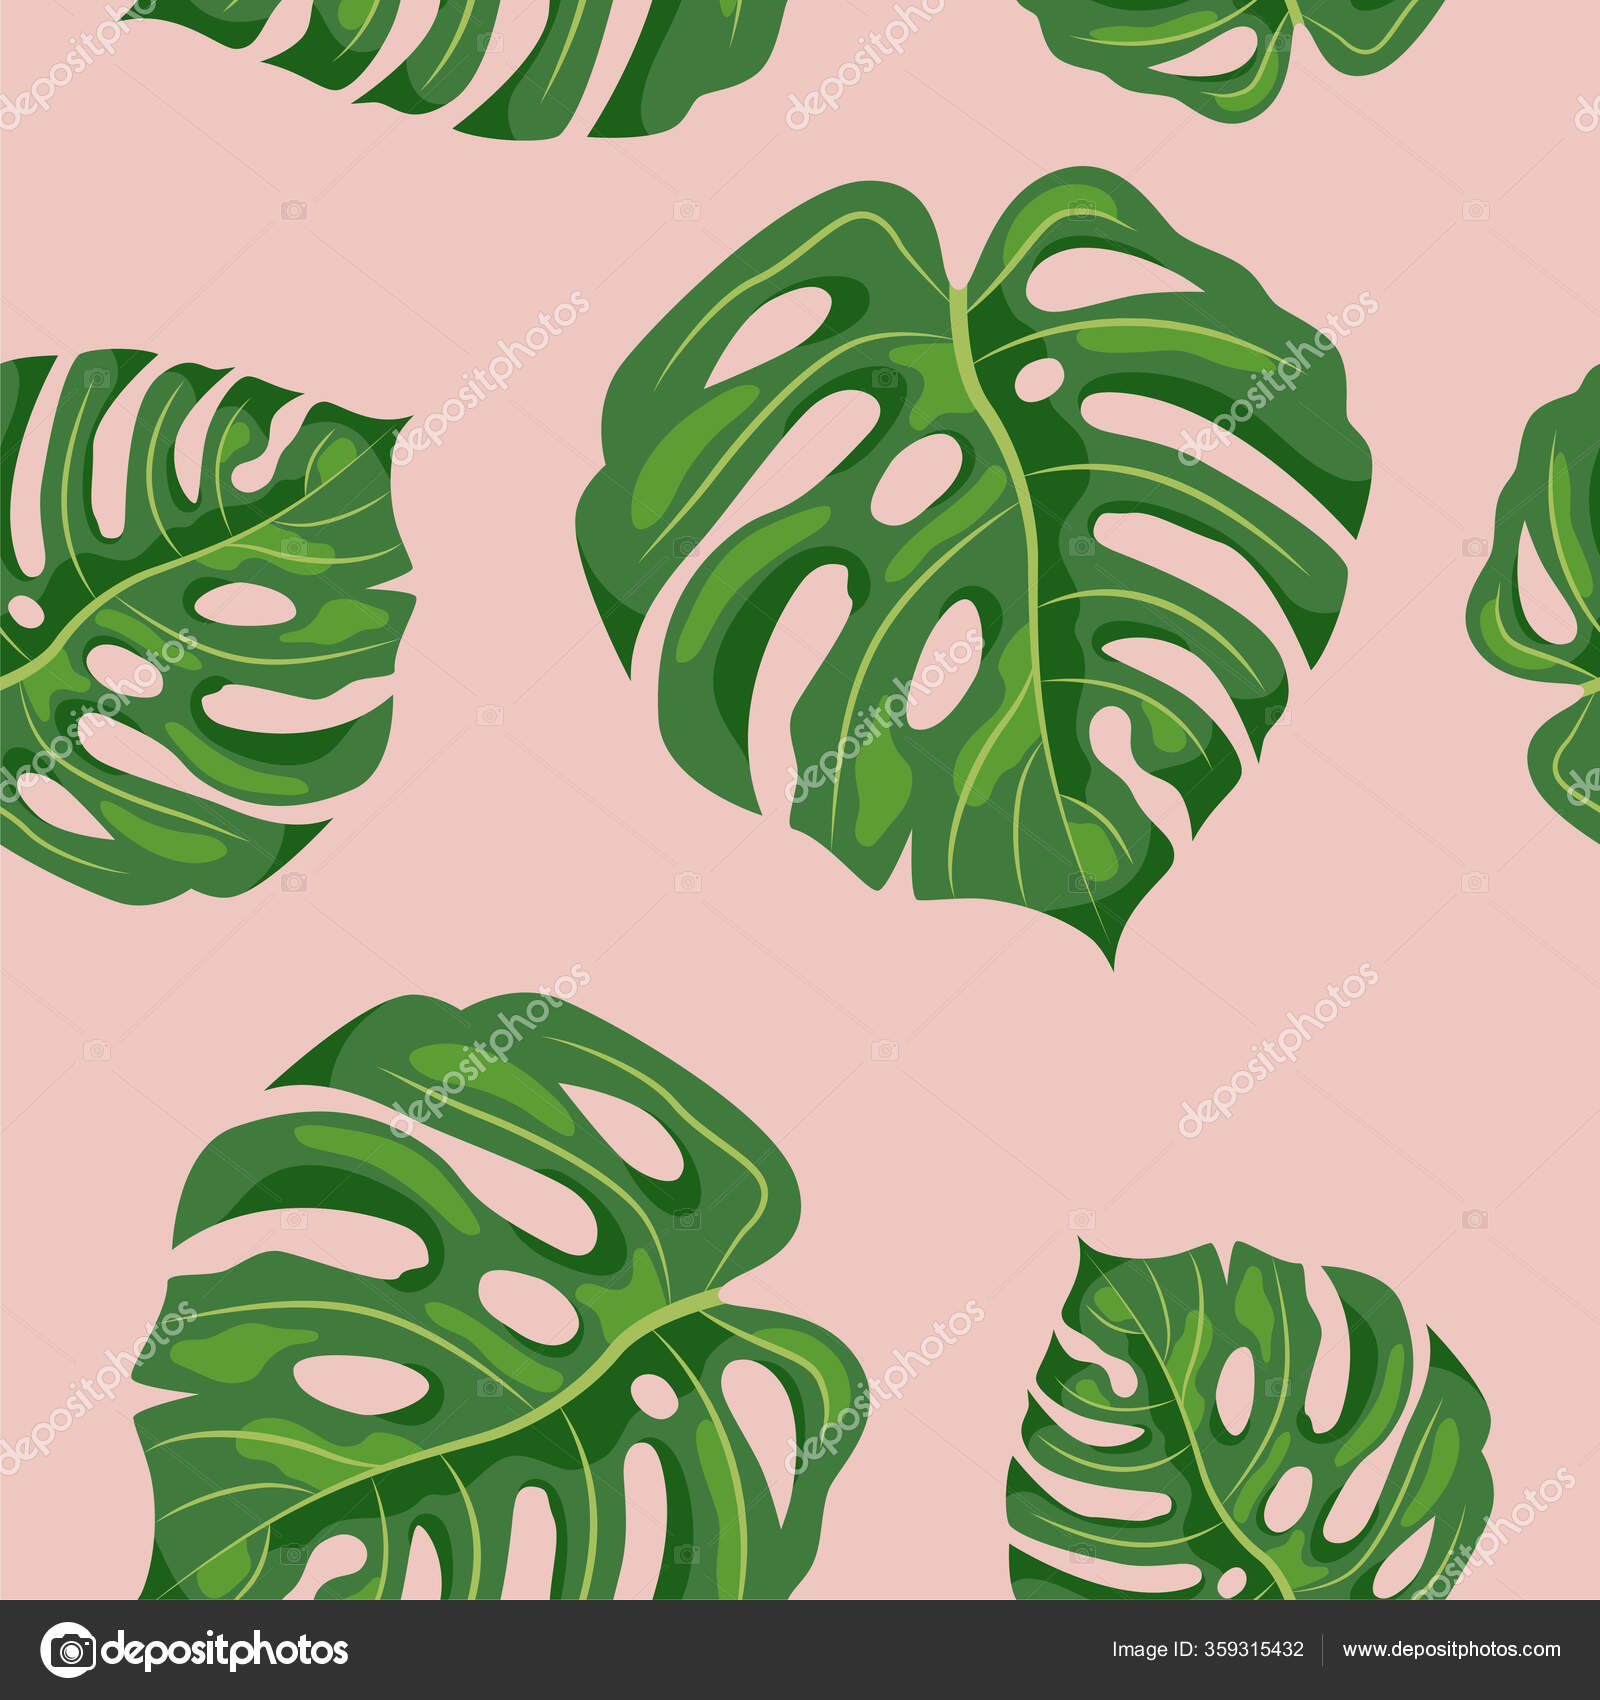 Seamless Pattern Tropical Leaves Monstera Vector Illustration Stock Vector C Nataliavarlamova 359315432 Tropical leaf of monstera plant isolated on white background. https depositphotos com 359315432 stock illustration seamless pattern tropical leaves monstera html